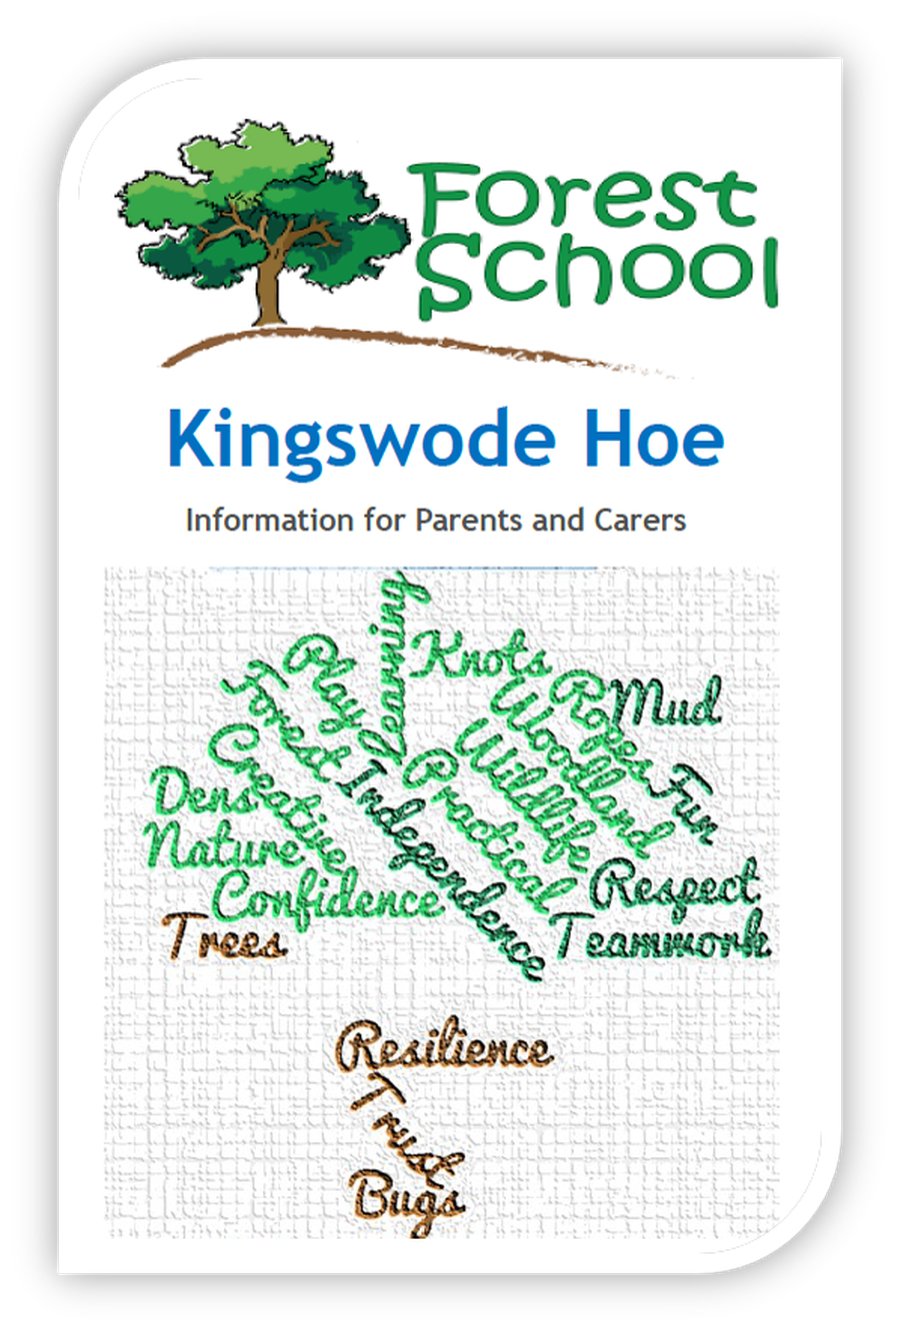 Information booklet for parents